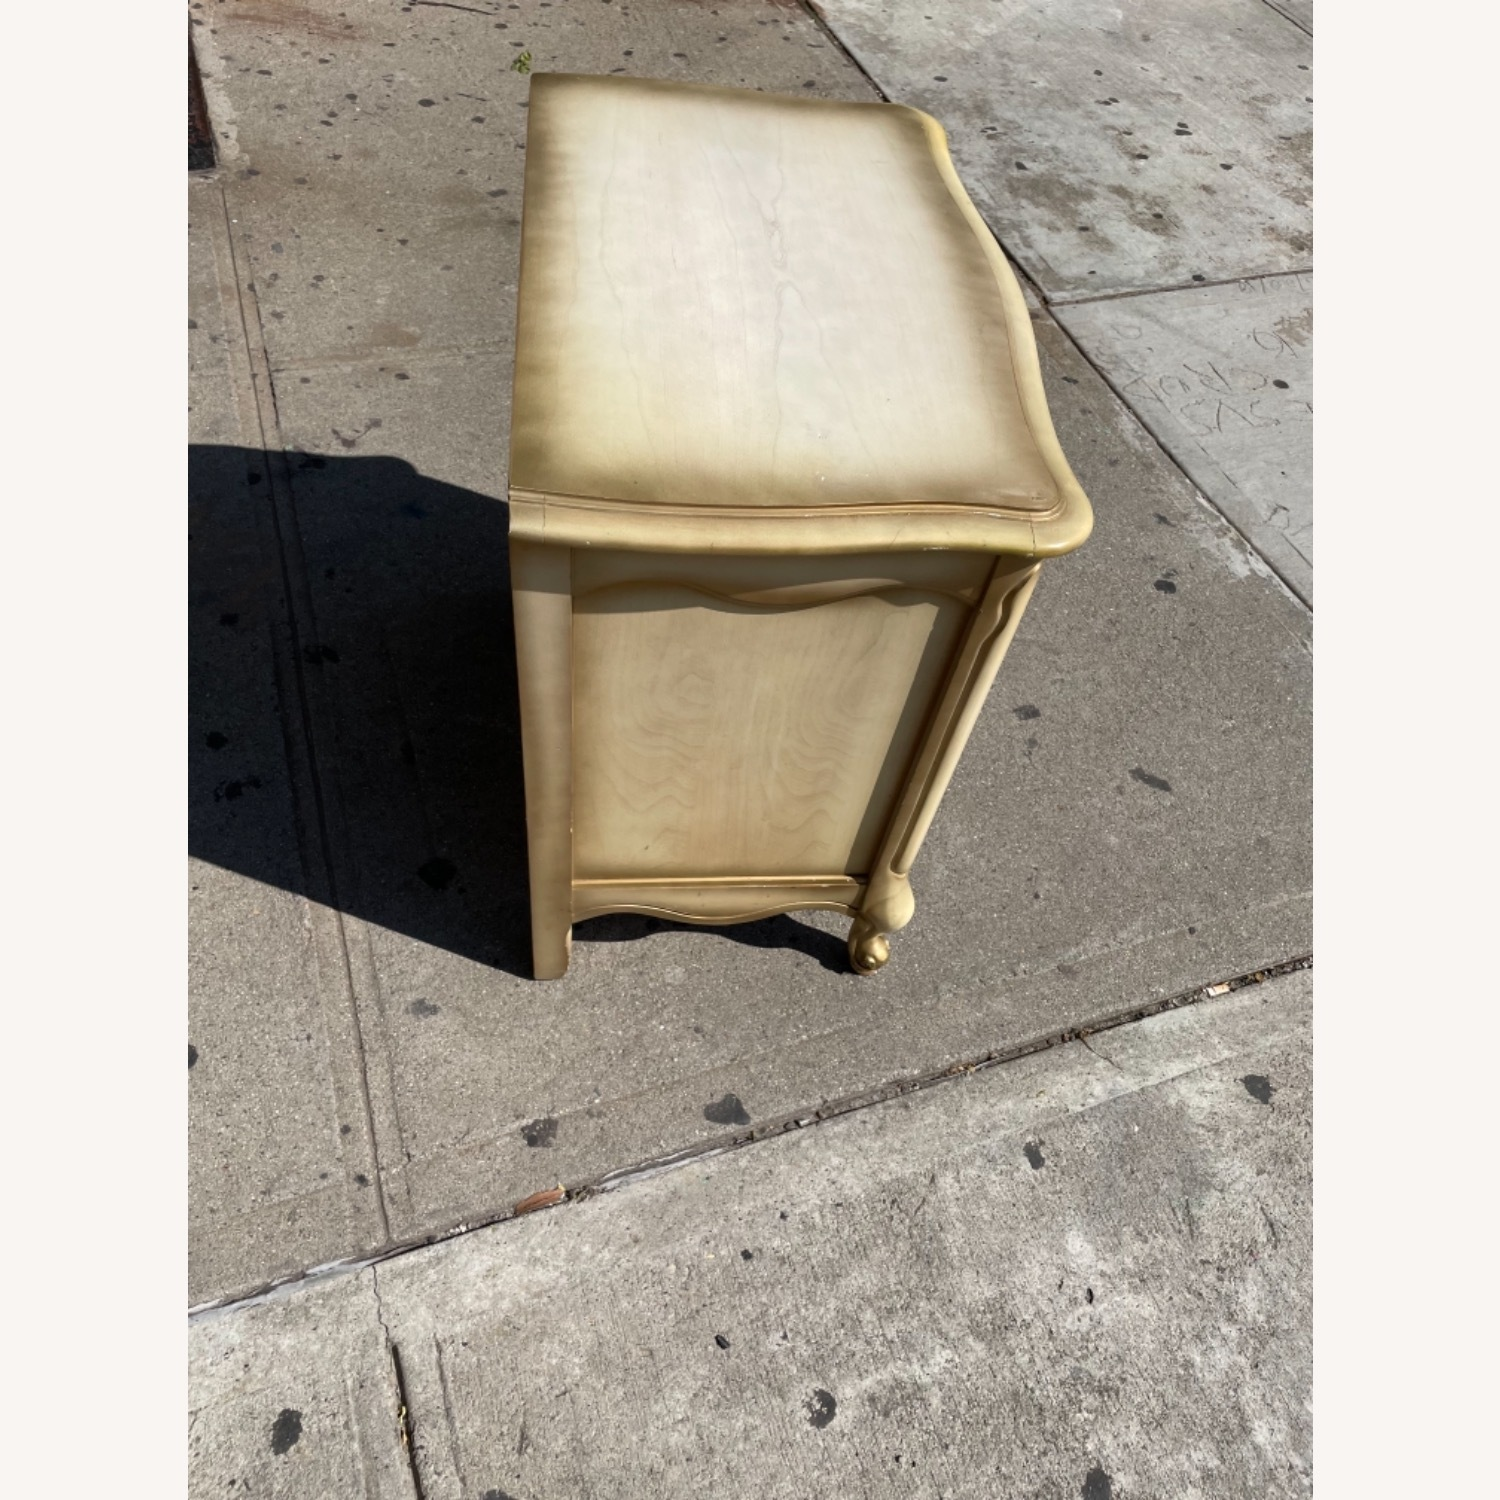 Basset 1970sFrench Style Nightstand w/GlassTop - image-7